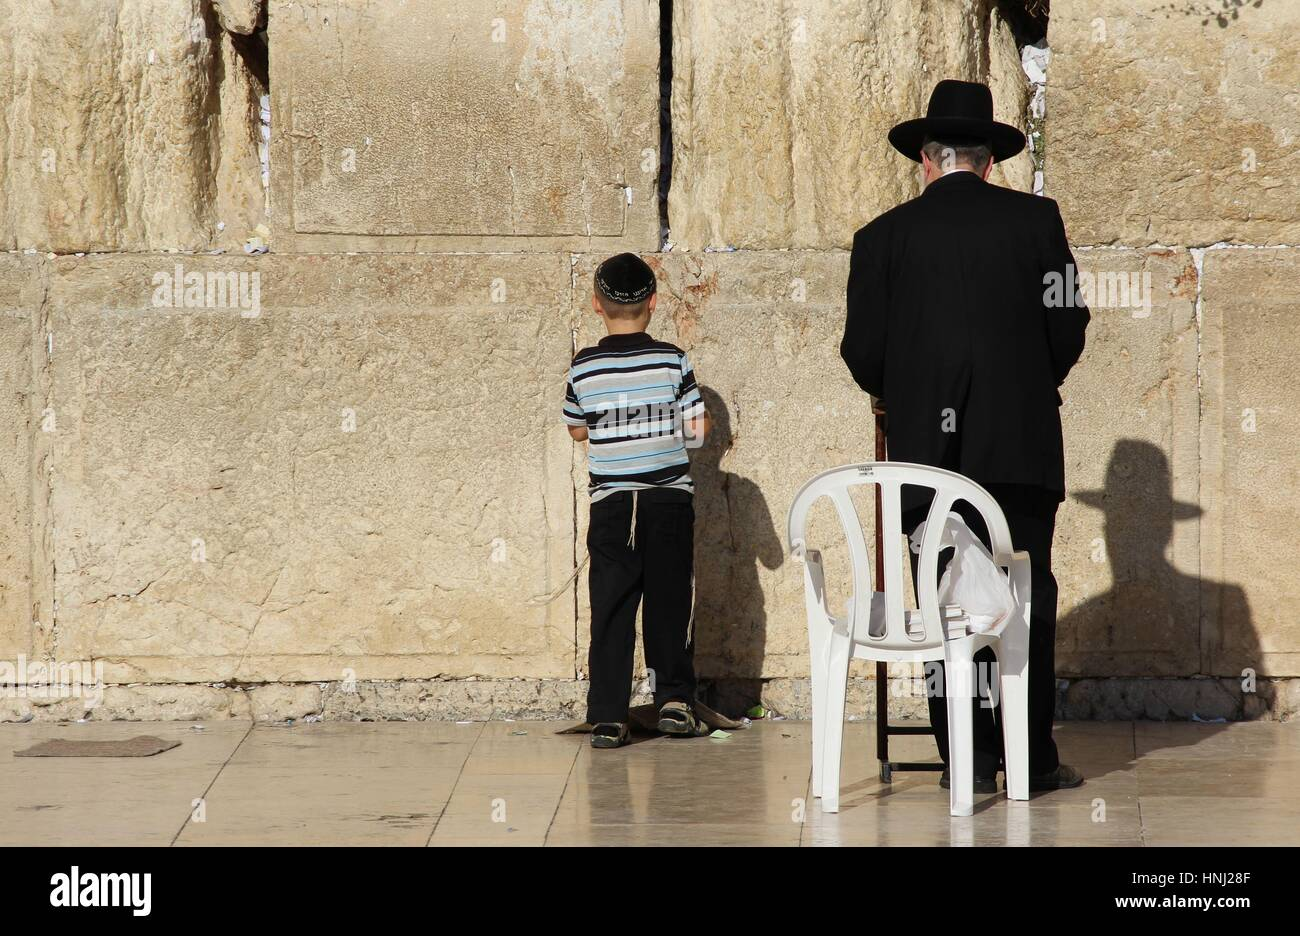 Man and Child Praying at the Wailing Wall - Stock Image